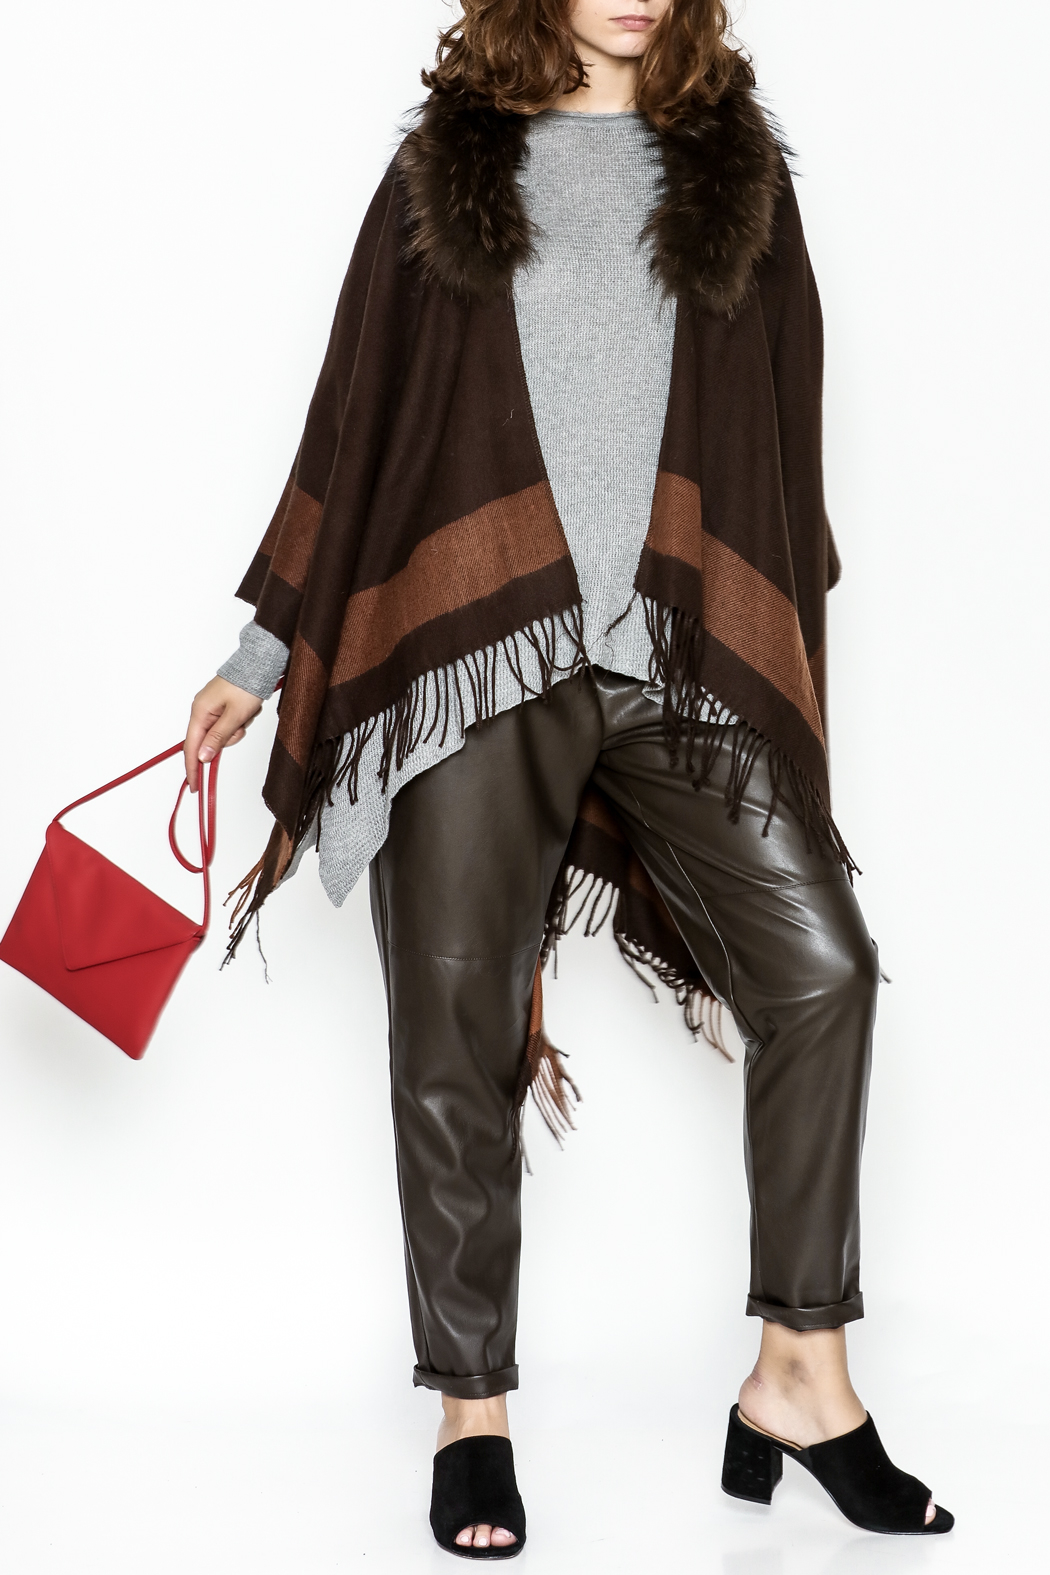 Jay Ley Collections Fox Fur Wrap - Main Image